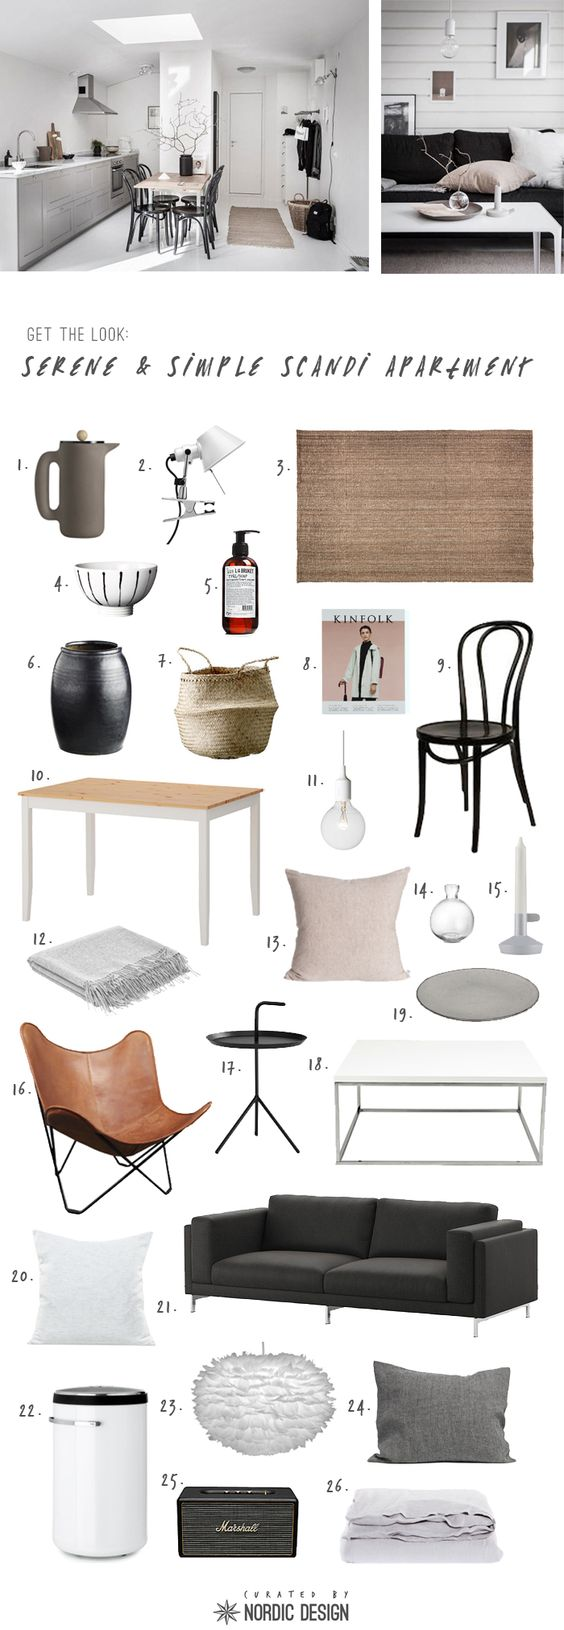 Gold and brass fixtures and faucets promising or passe apartment - Light Scandinavian Studio Apartment Studio Loft Apartment Blog Pinterest Studio Apartment Scandinavian And Flats